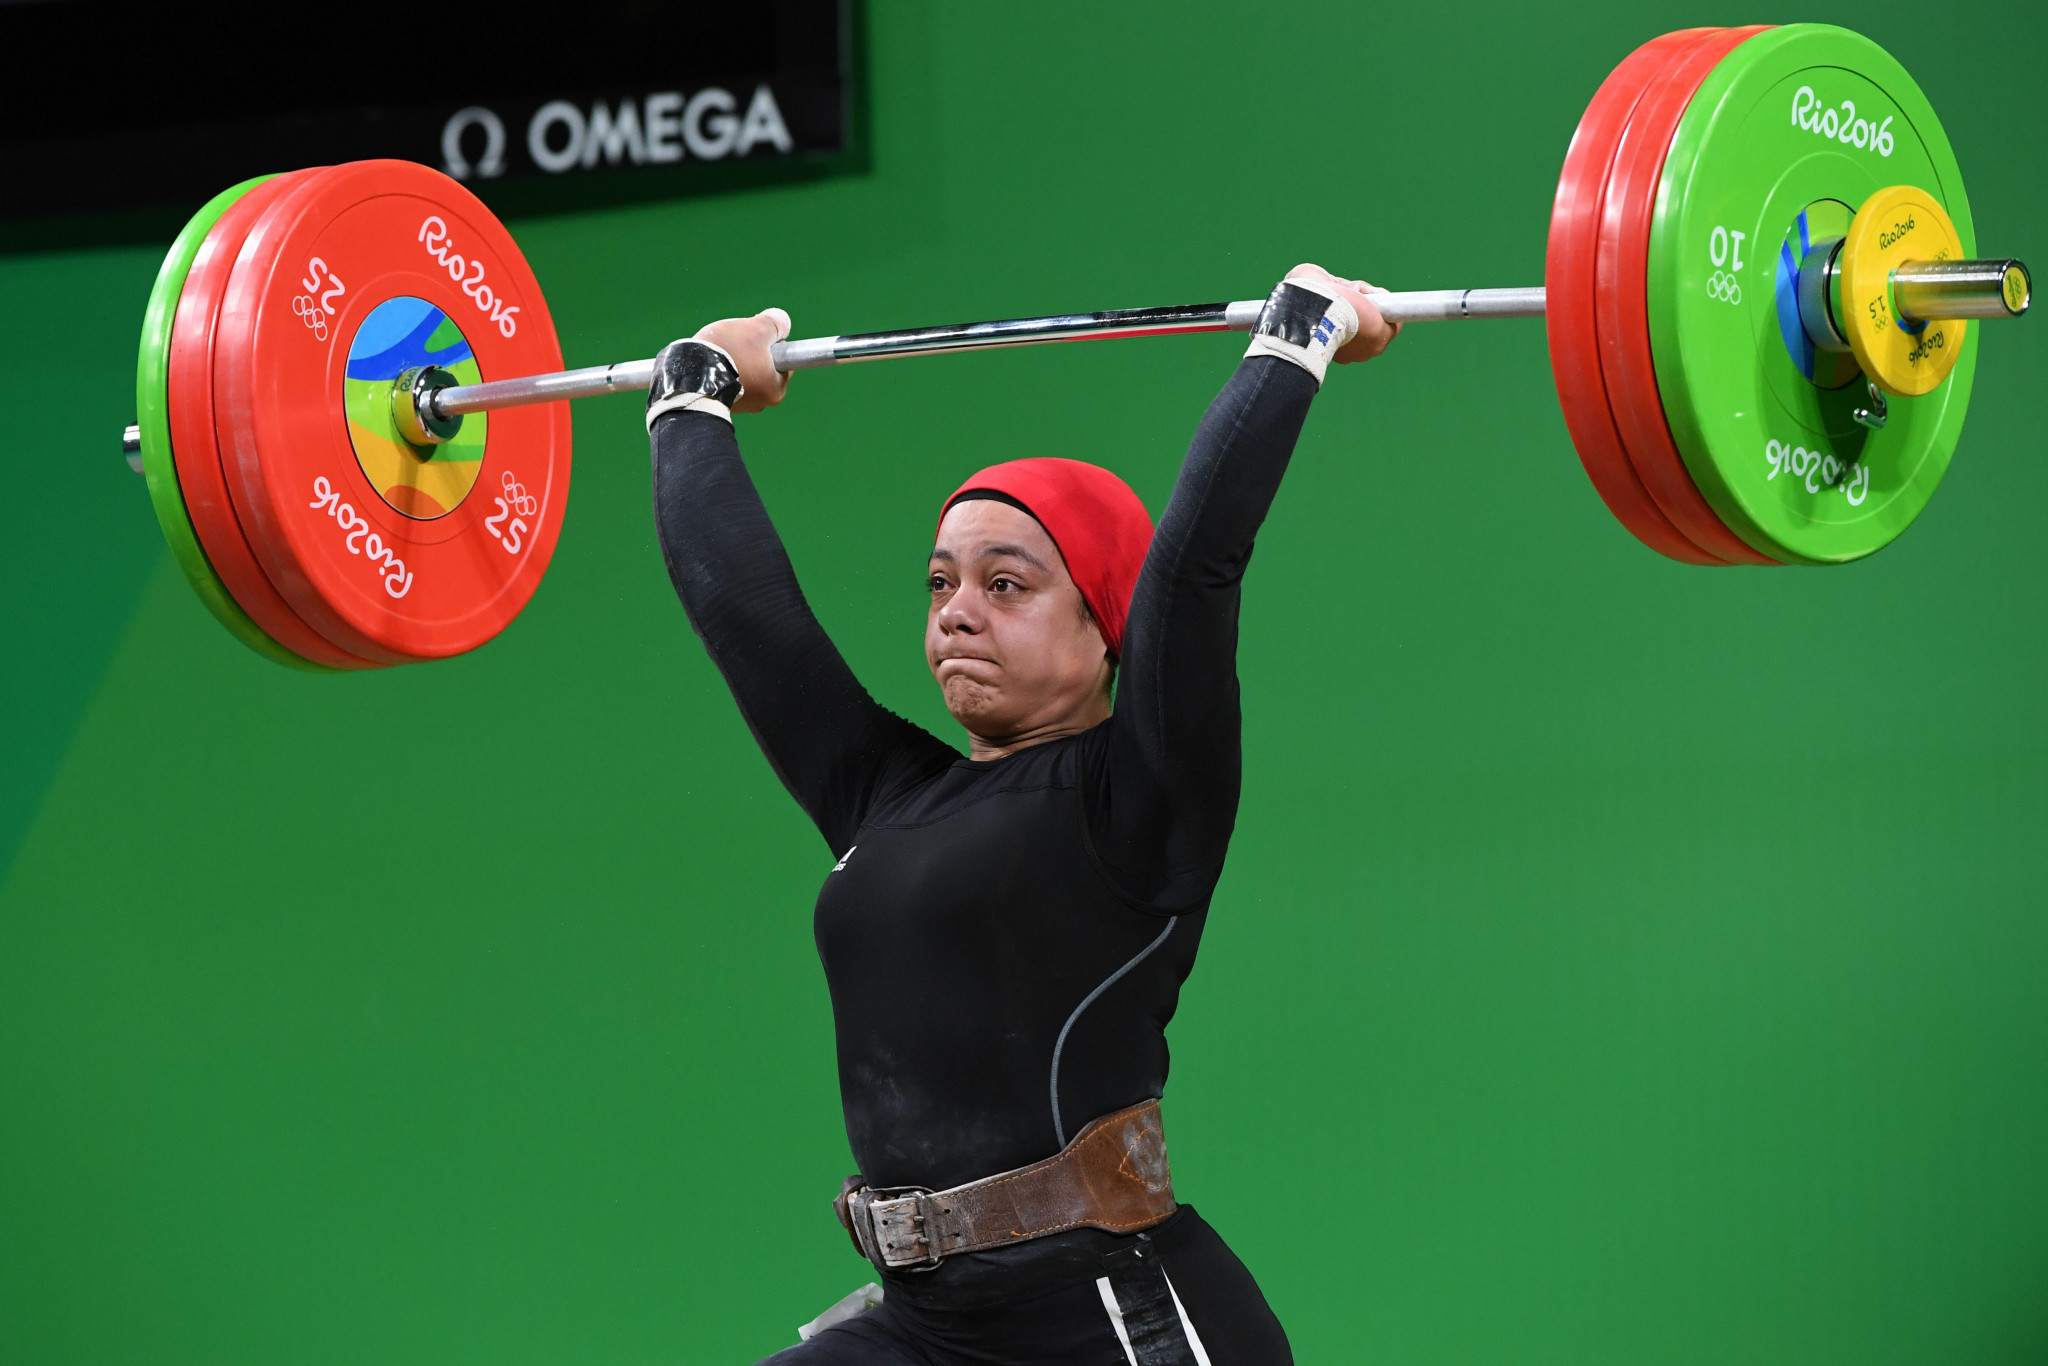 Egypt's Sara Ahmed is having to pay a heavy price for her country's doping ban ©Getty Images